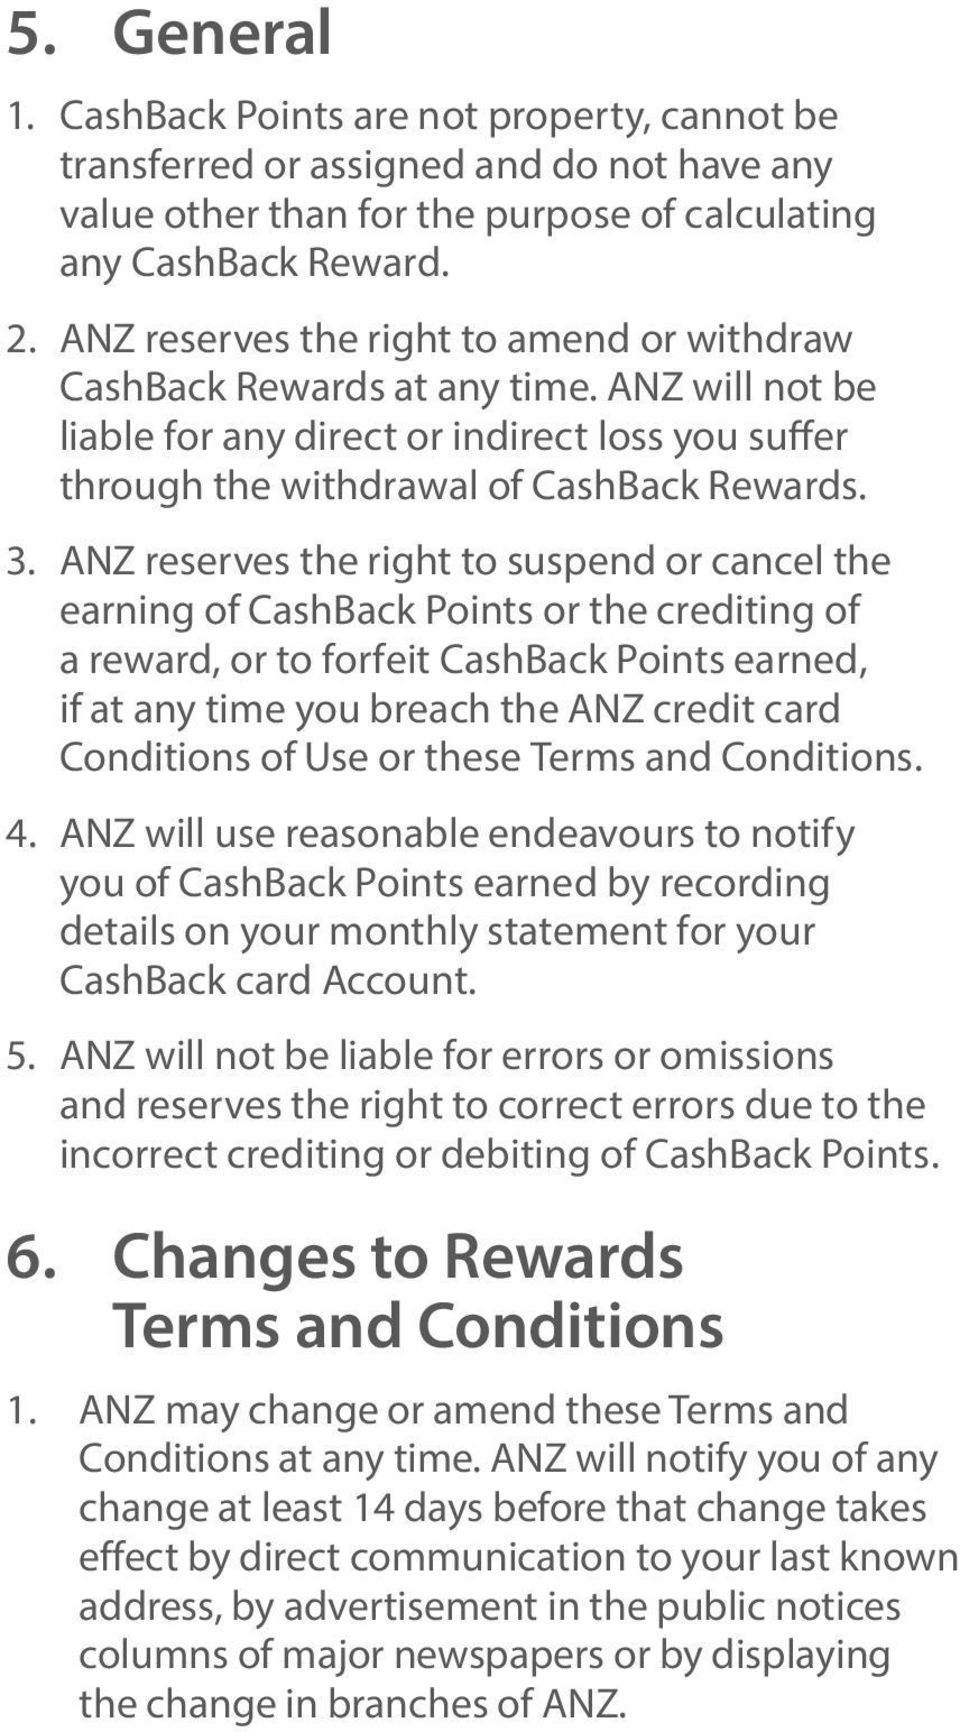 ANZ reserves the right to suspend or cancel the earning of CashBack Points or the crediting of a reward, or to forfeit CashBack Points earned, if at any time you breach the ANZ credit card Conditions